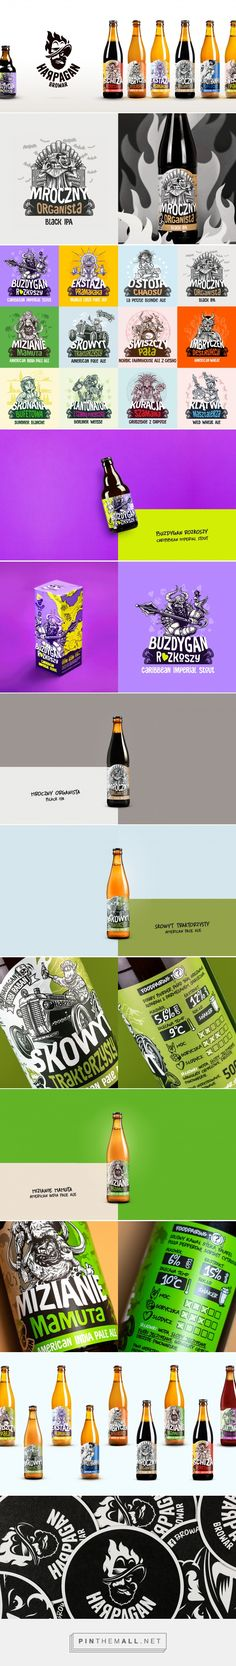 Harpagan Brewery packaging design by Fuse Collective - https://www.packagingoftheworld.com/2018/05/harpagan-brewery.html